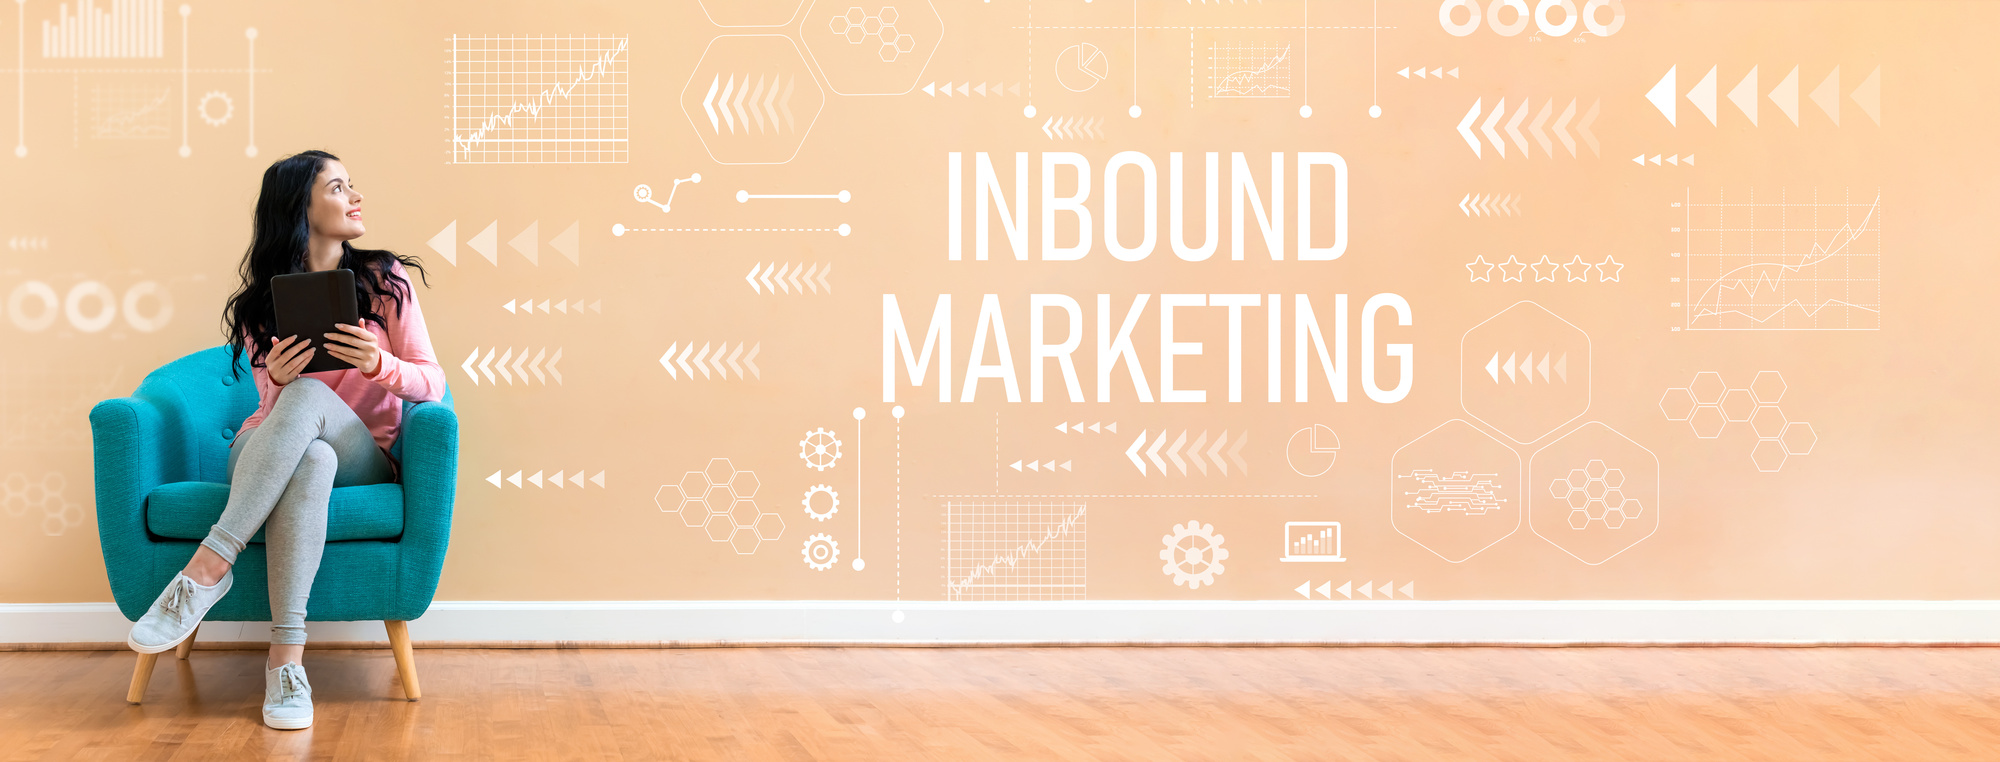 Inbound marketing with woman using a tablet